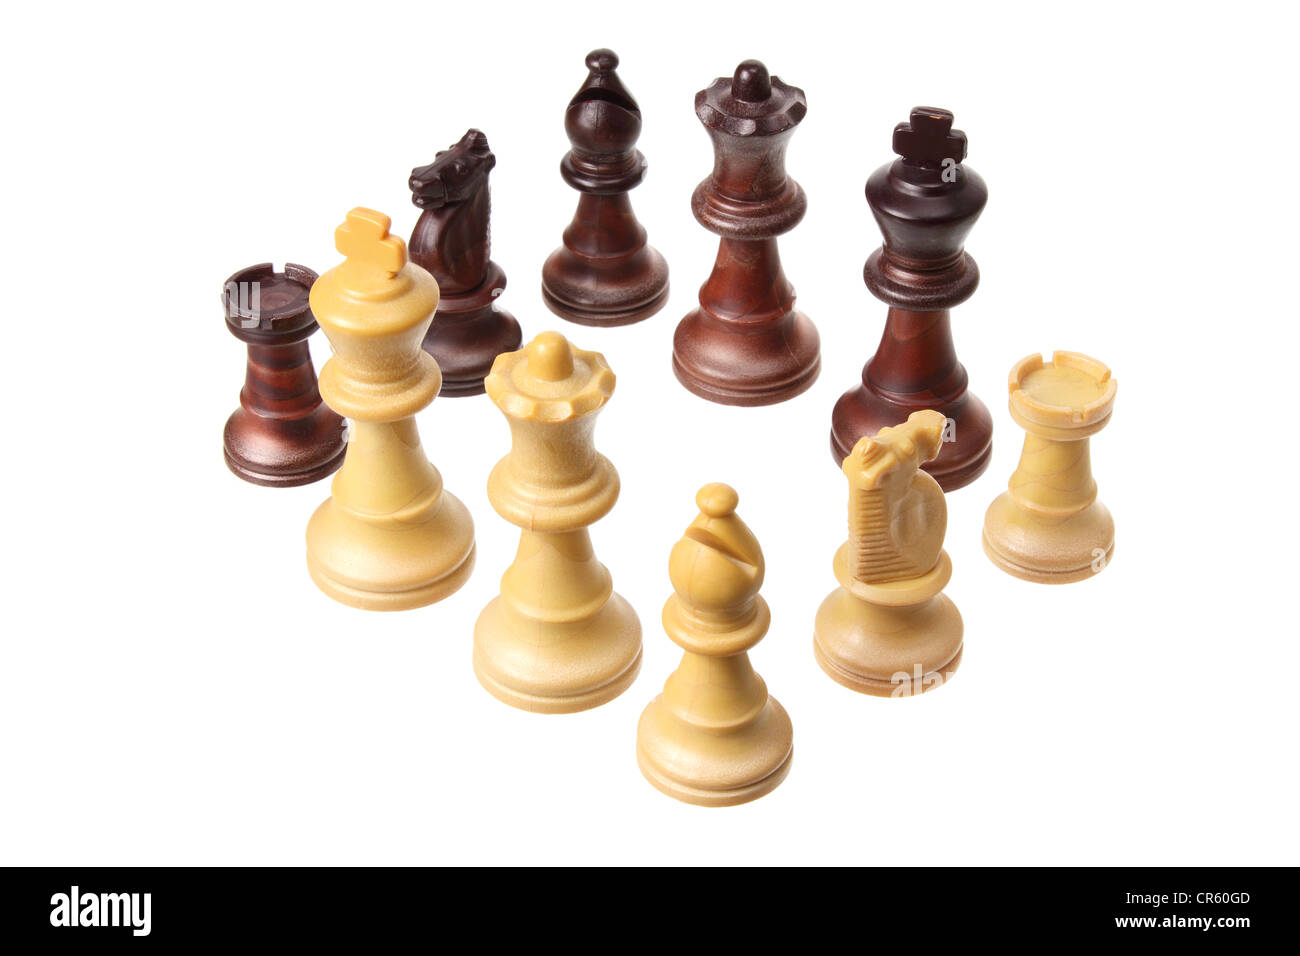 Chess Pieces - Stock Image